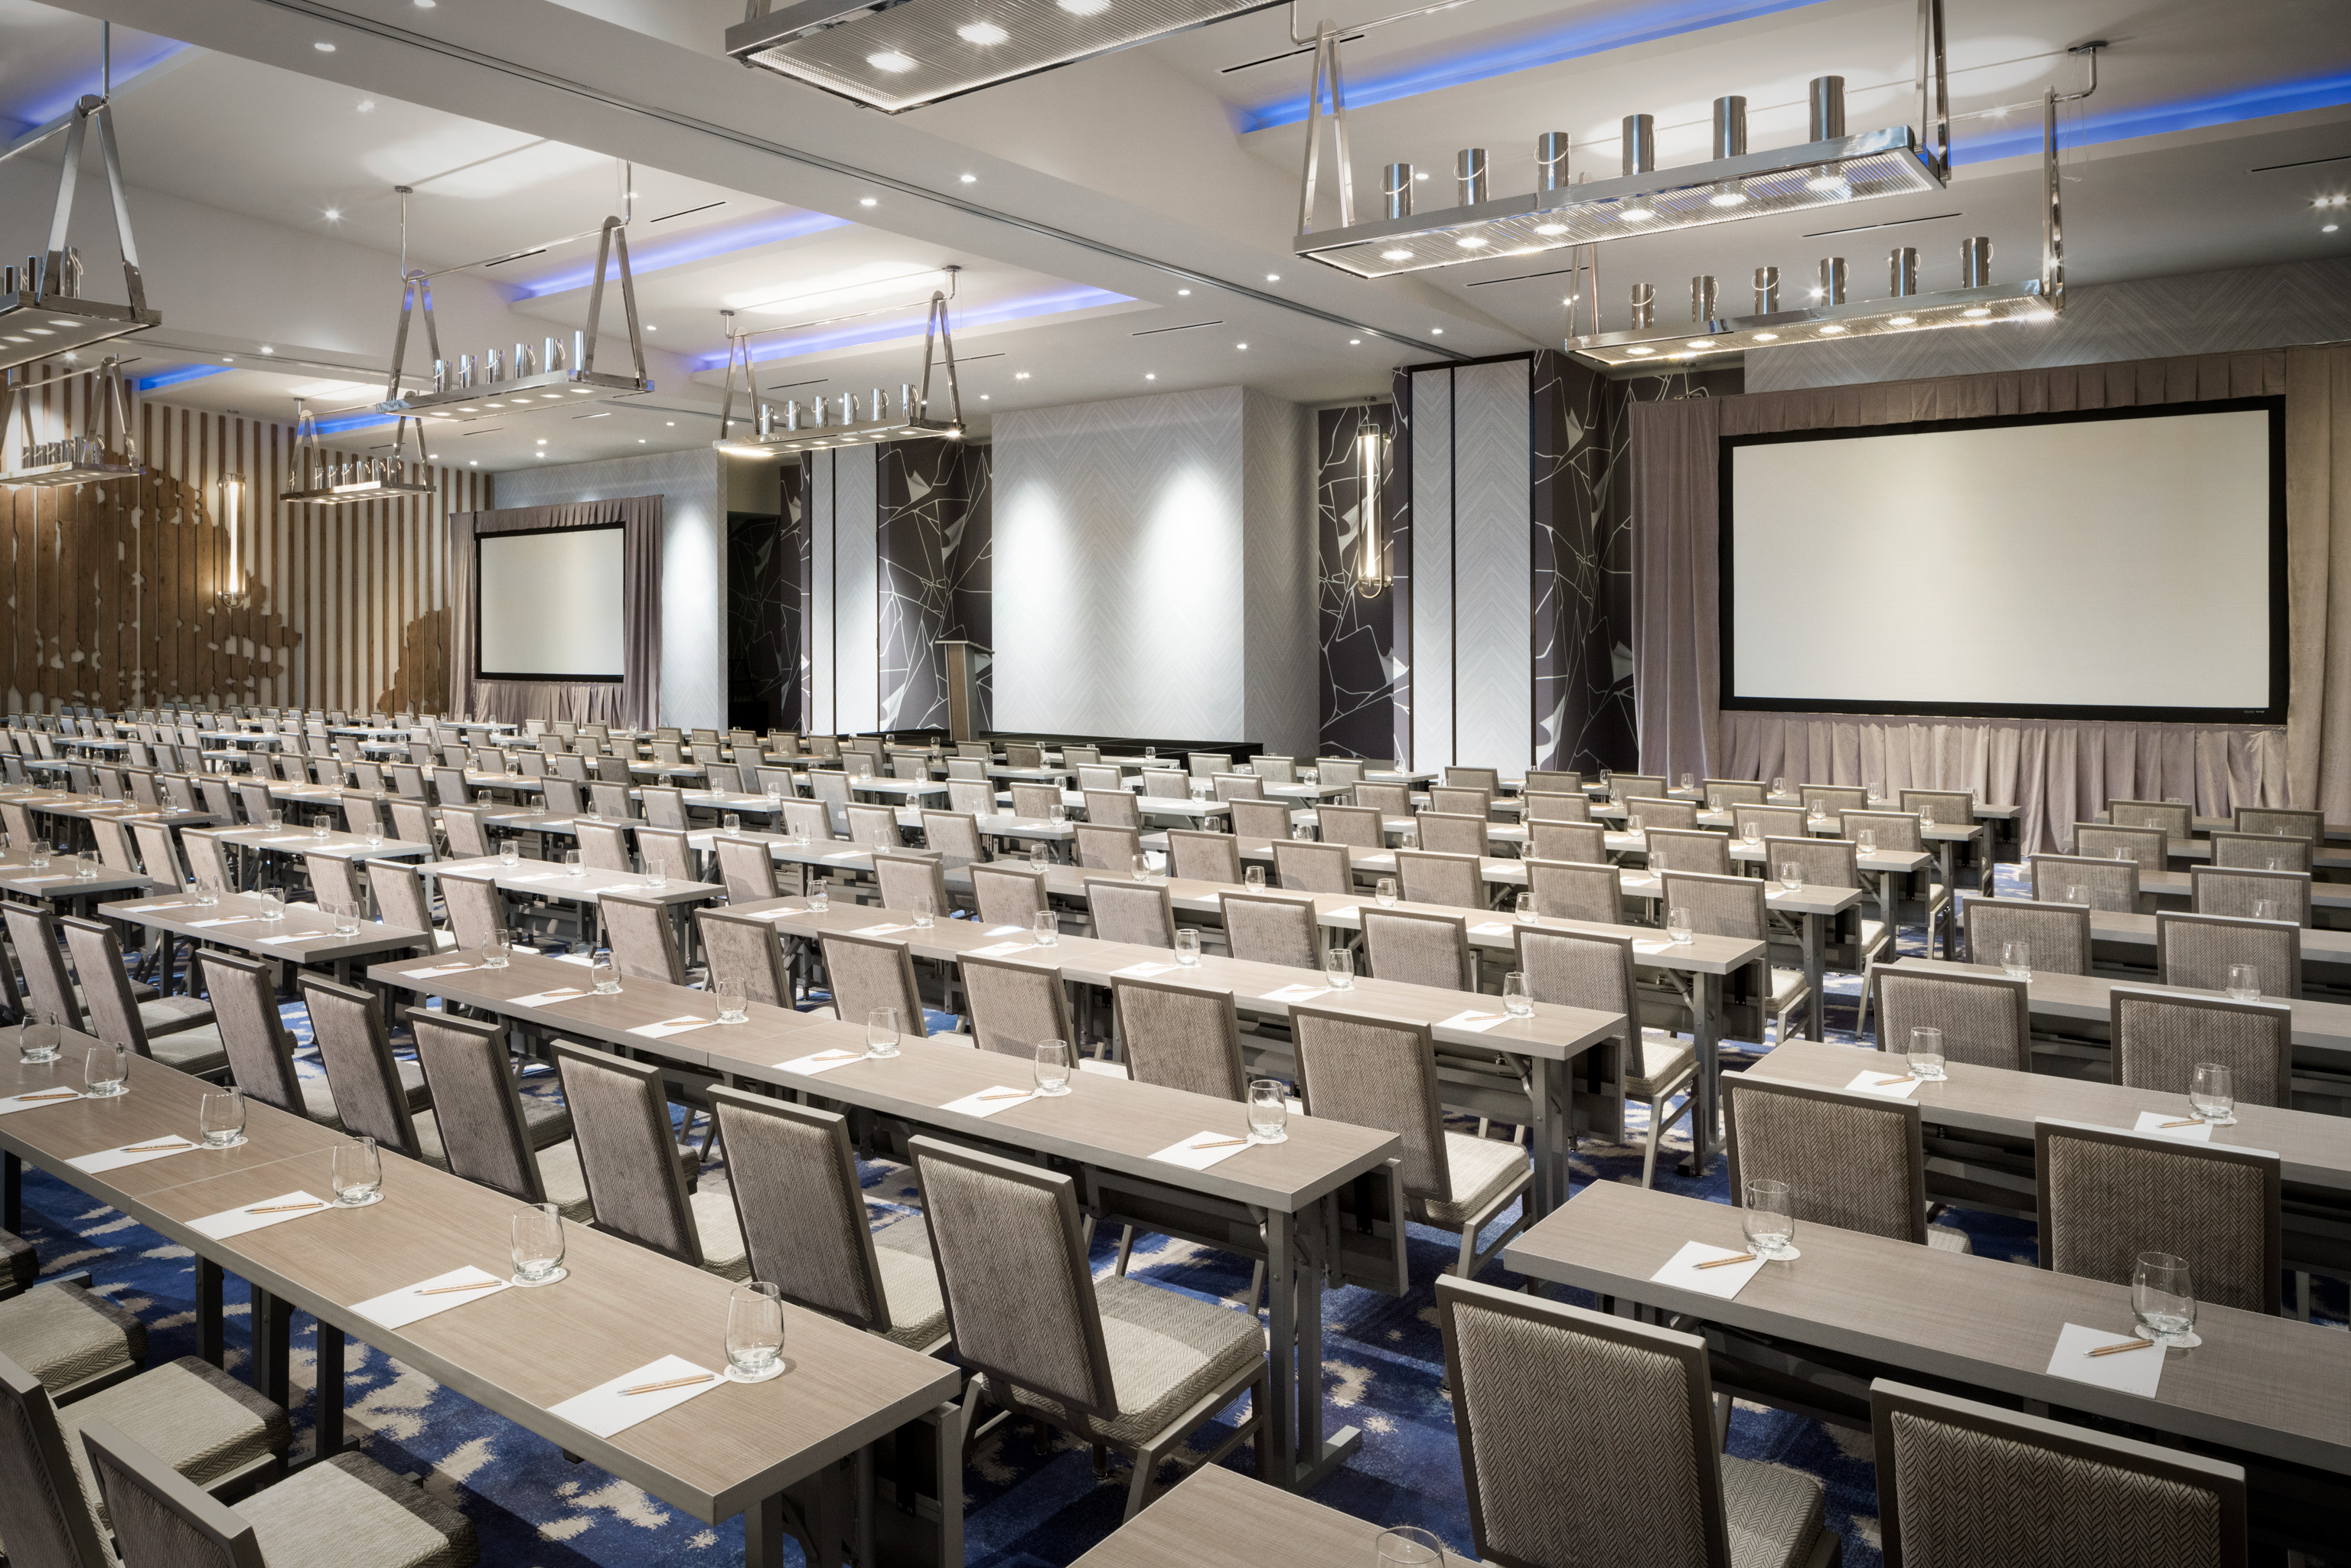 Brilliance Ballroom event space at Hotel Nia, Autograph Collection in New York City, NYC, NY/NJ Area